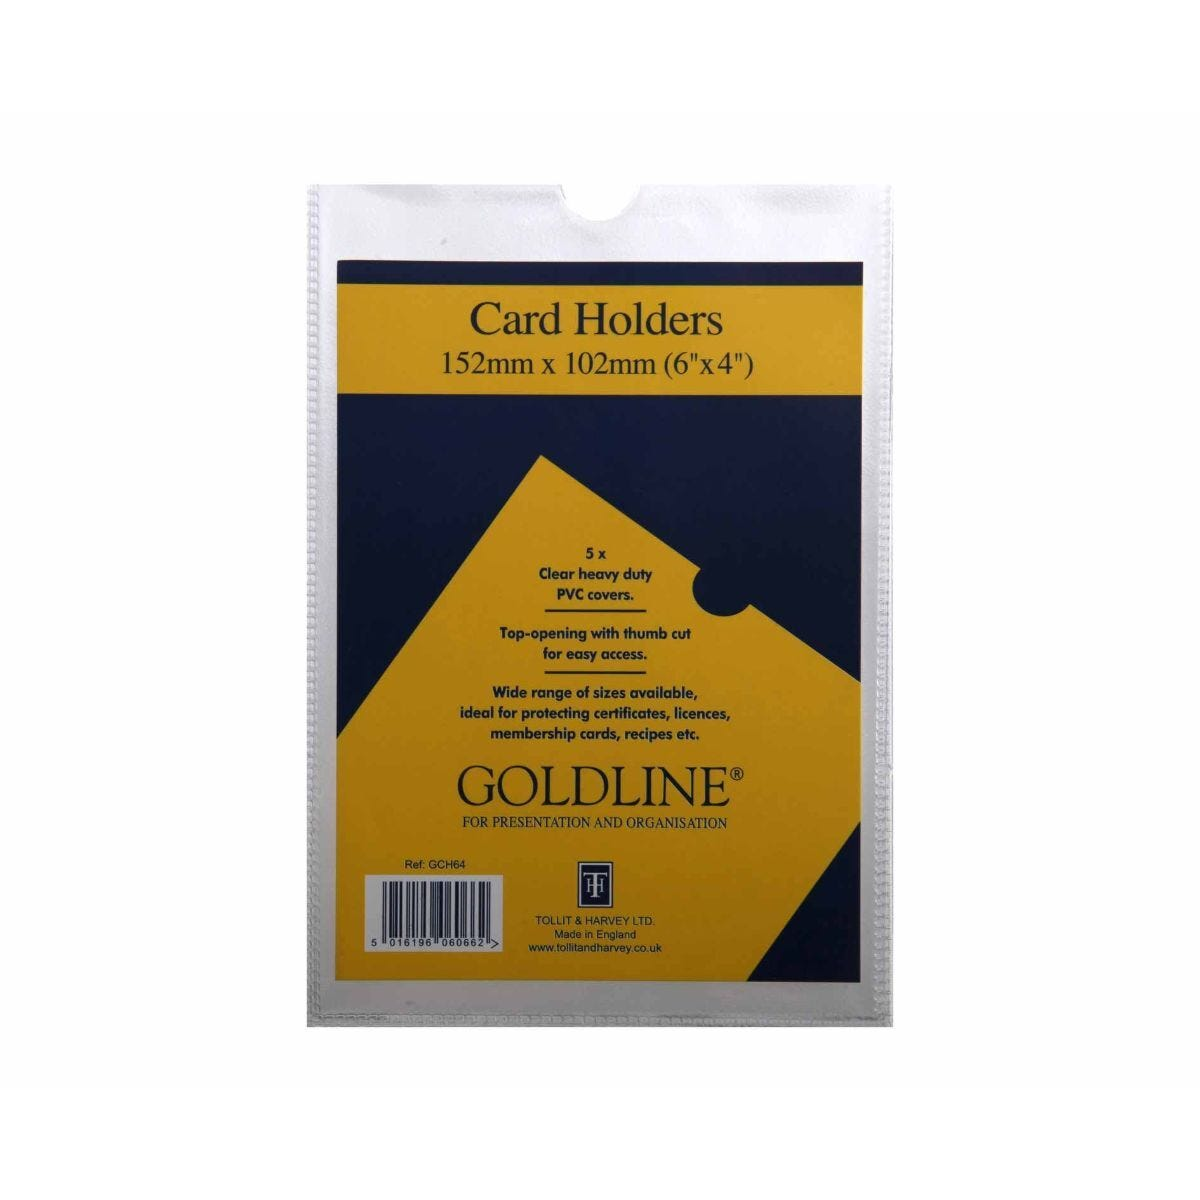 Goldline Card Holders 152x102mm